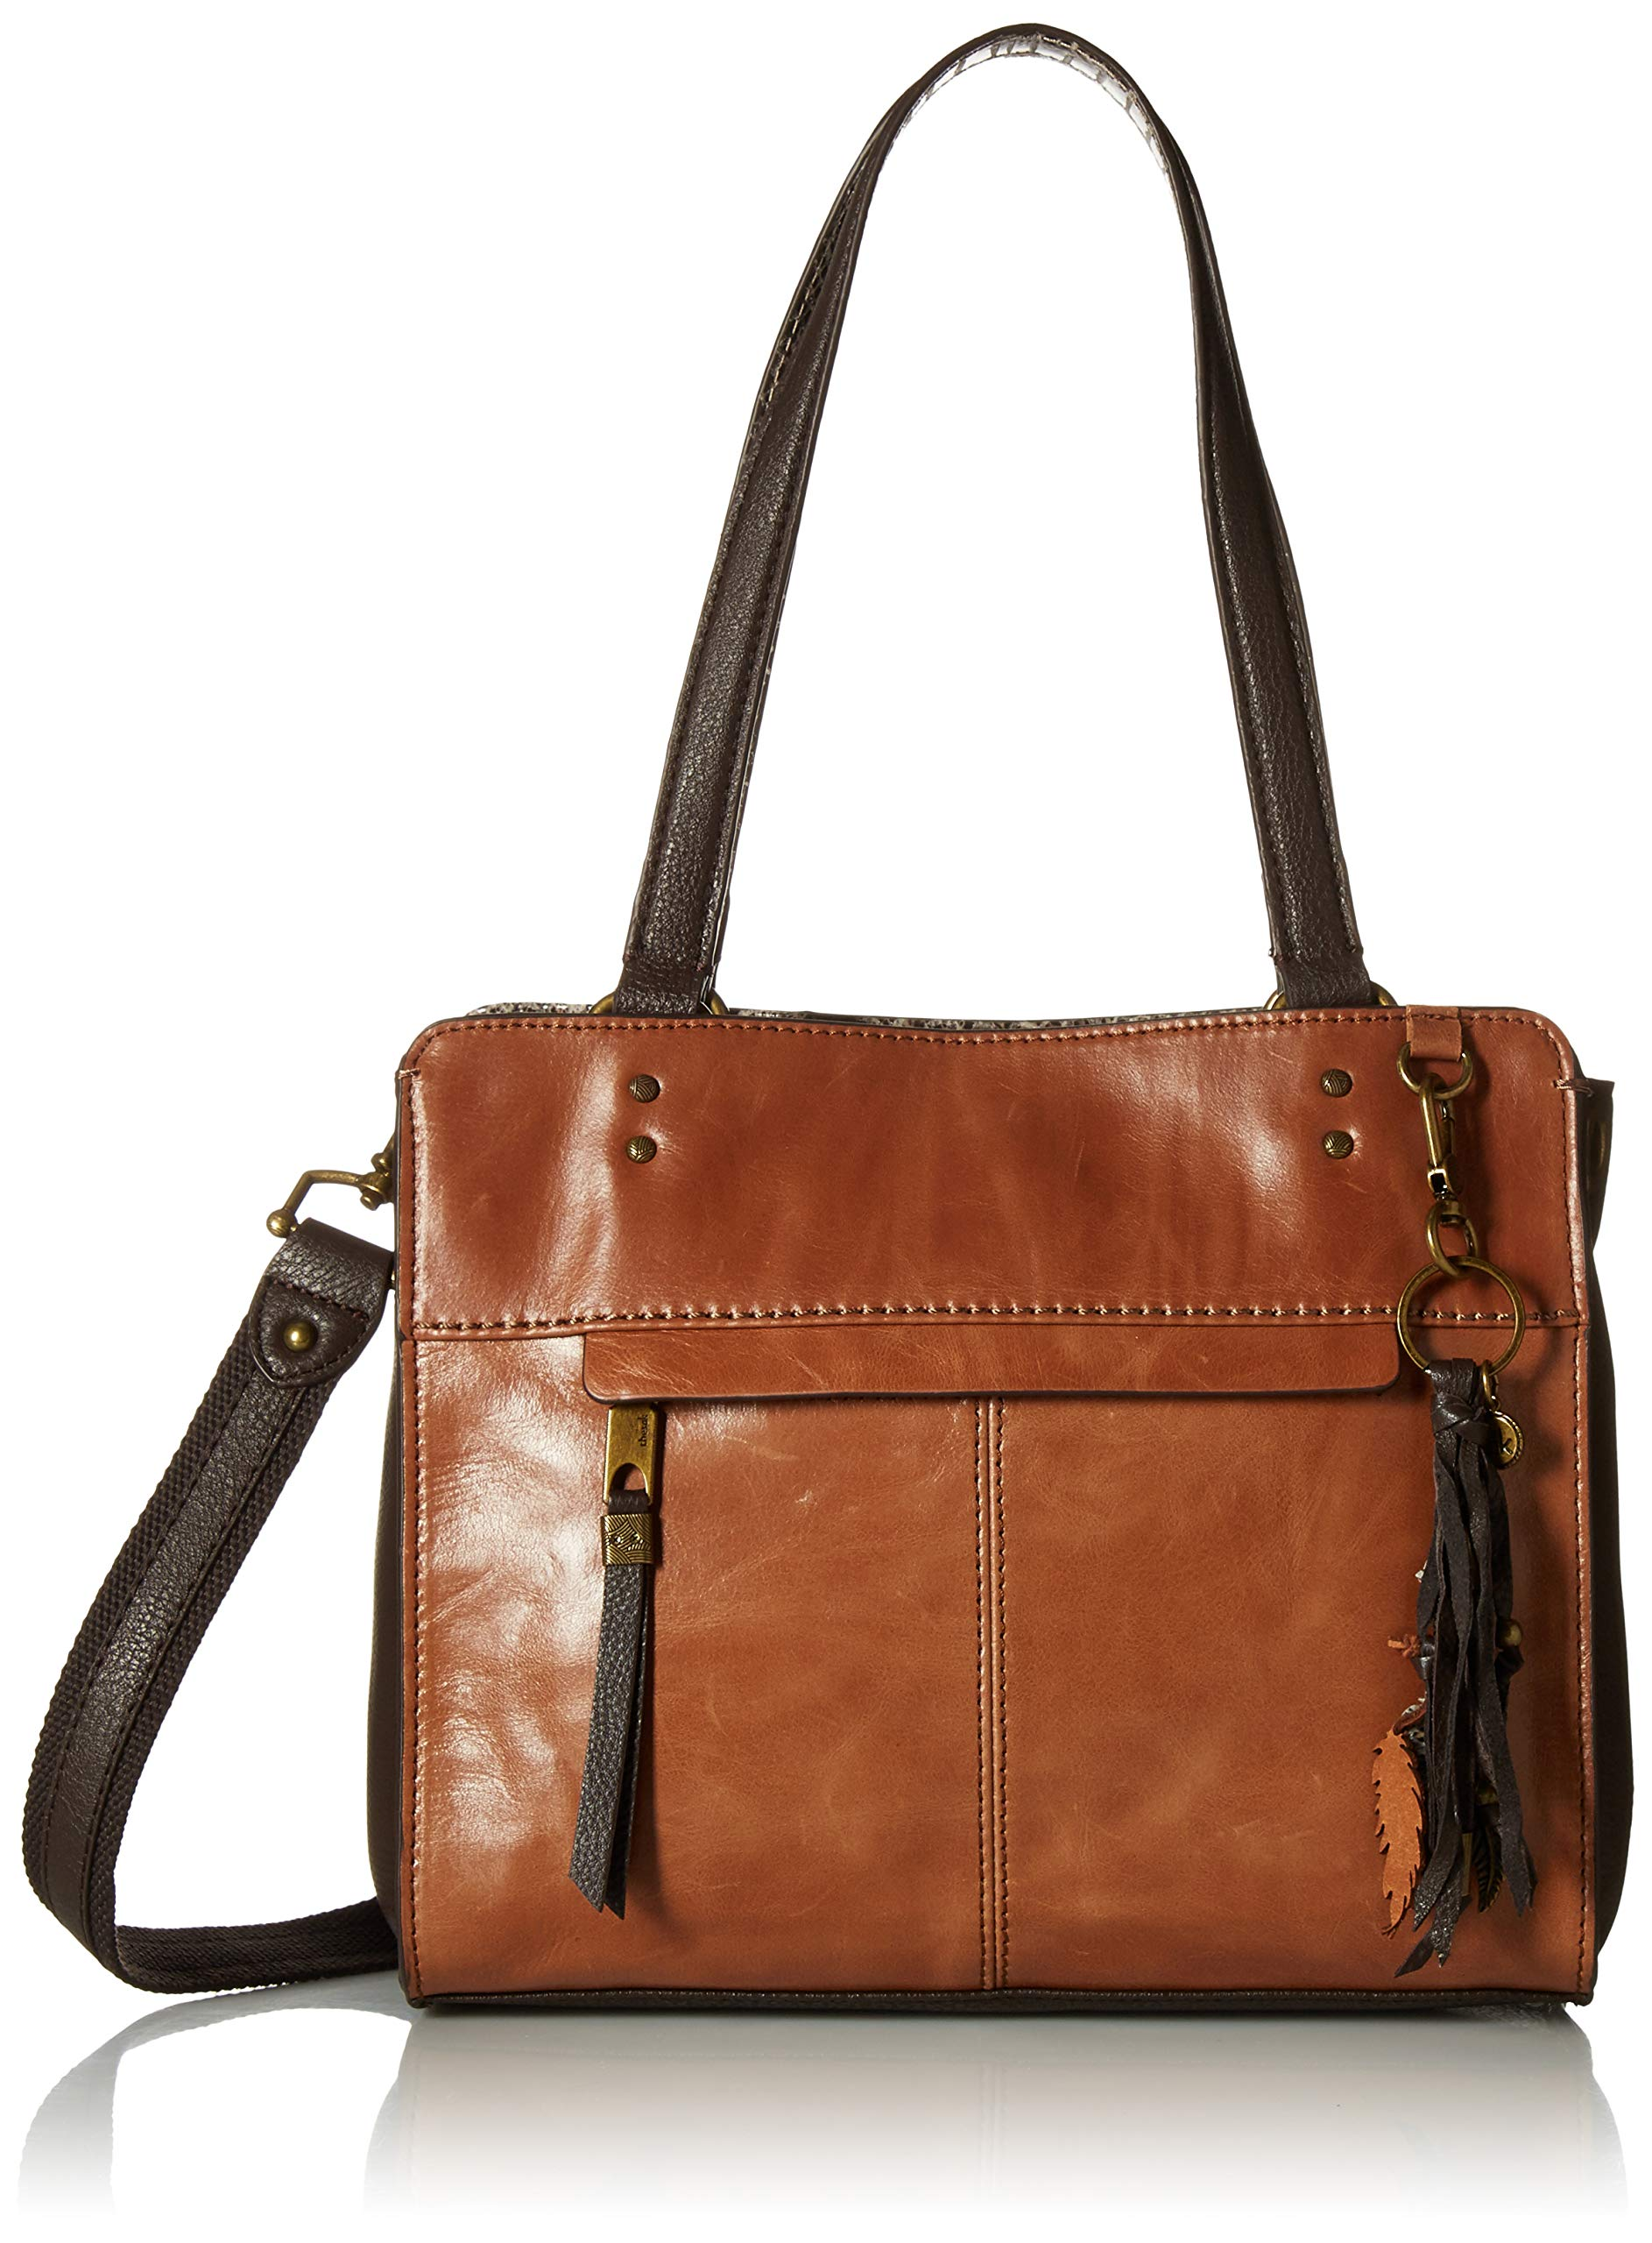 The Sak Women's Alameda Satchel-Tobacco Snake Multi